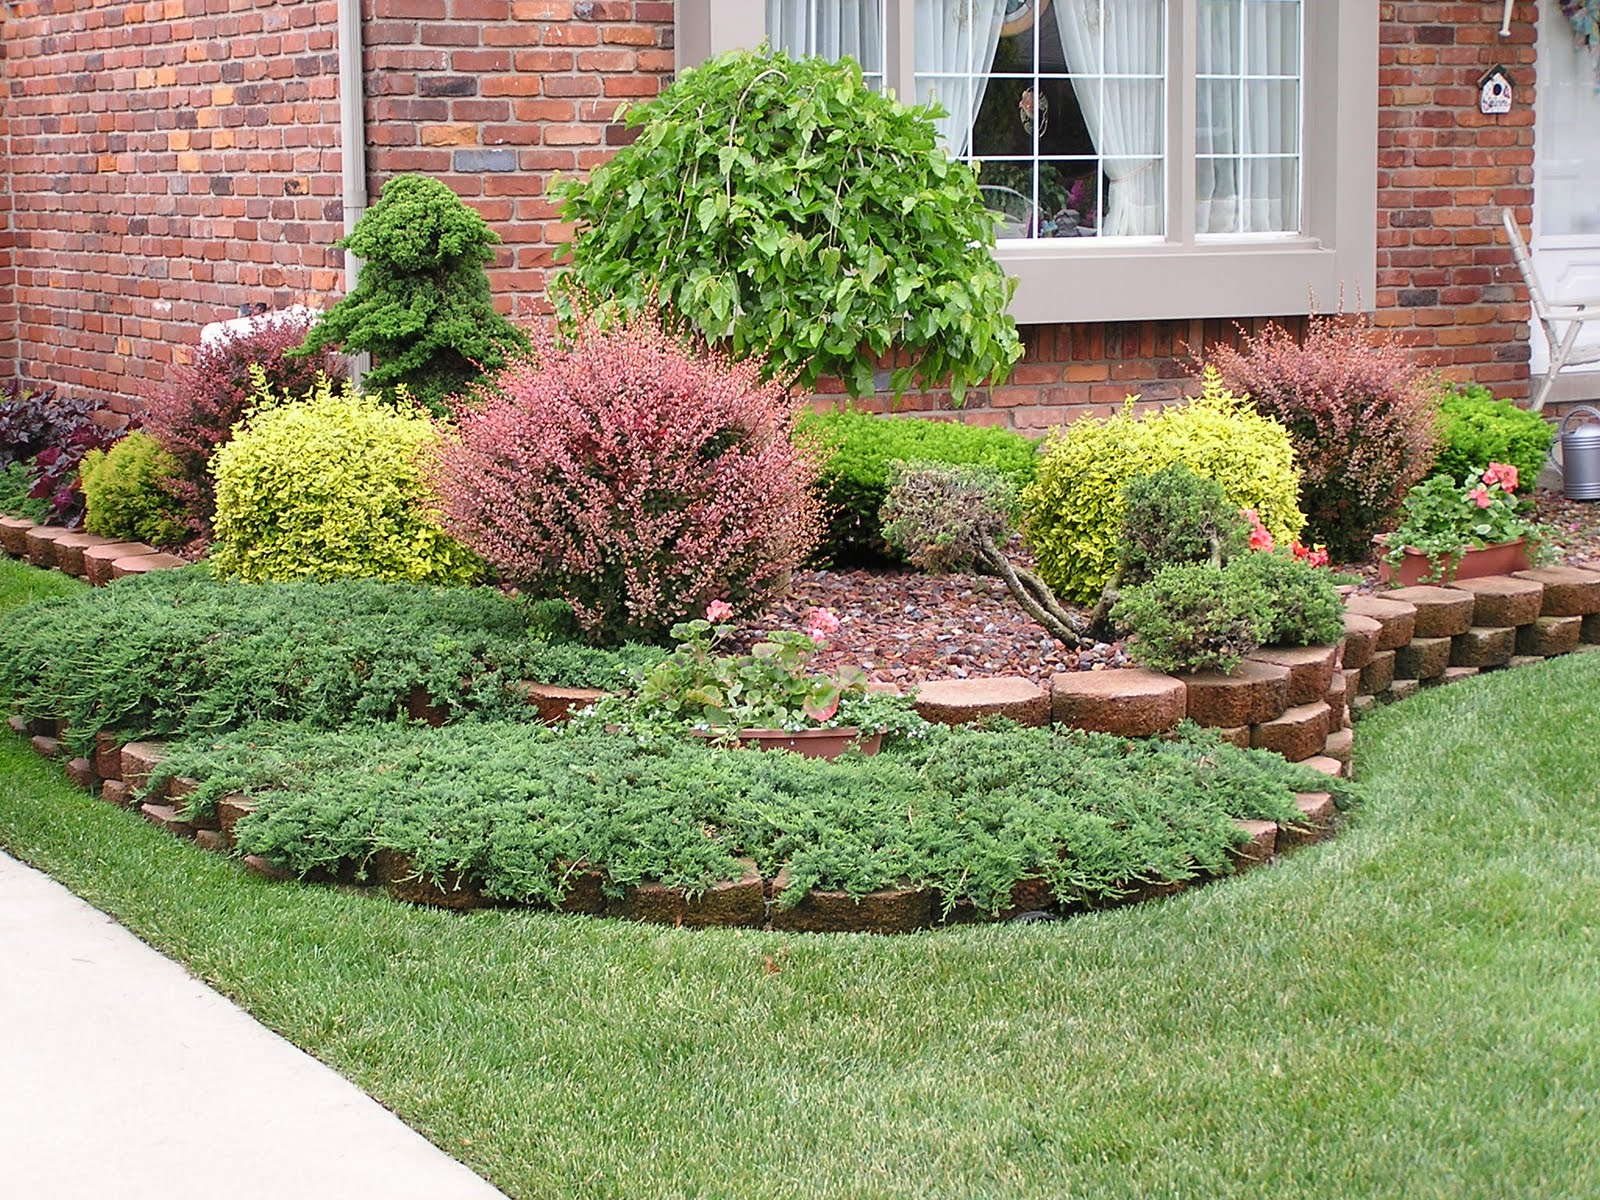 D i y d e s i g n curb appeal part 2 the landscaping for Small garden images